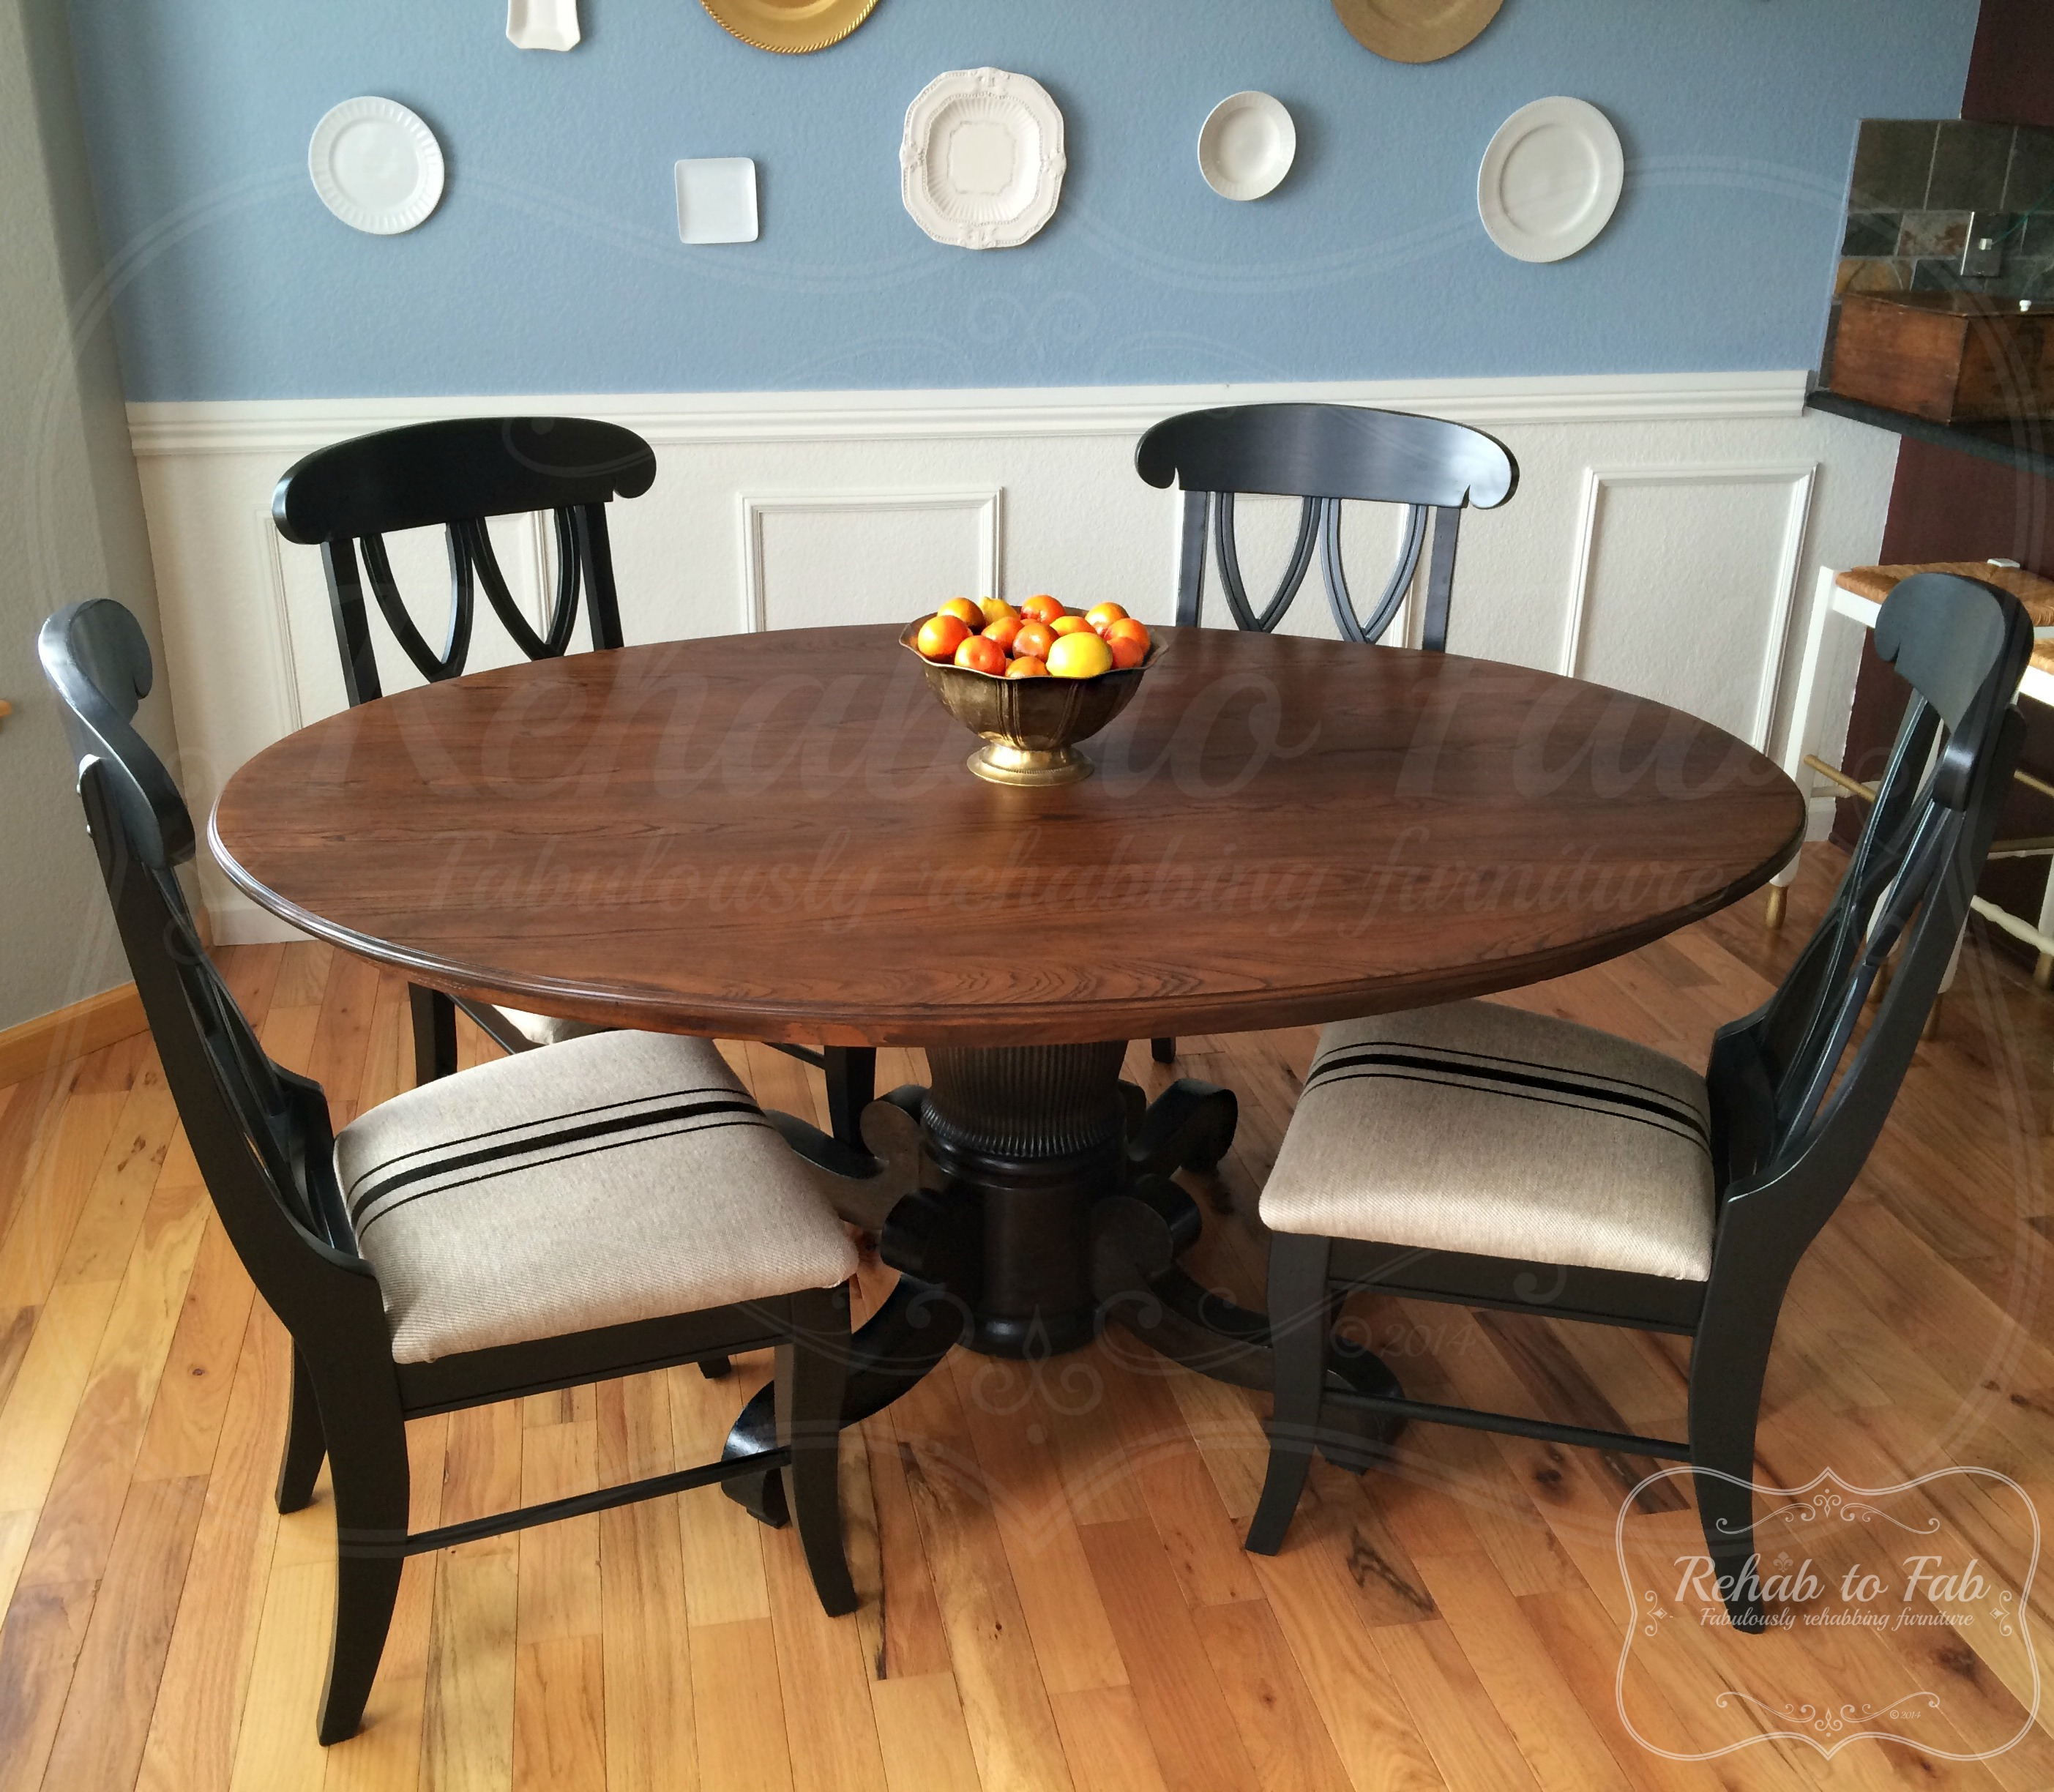 Old Fashioned Kitchen Table Sets Fascinating Table And Chairs In Java Antique Walnut Gel Stain And Lamp 7574 7